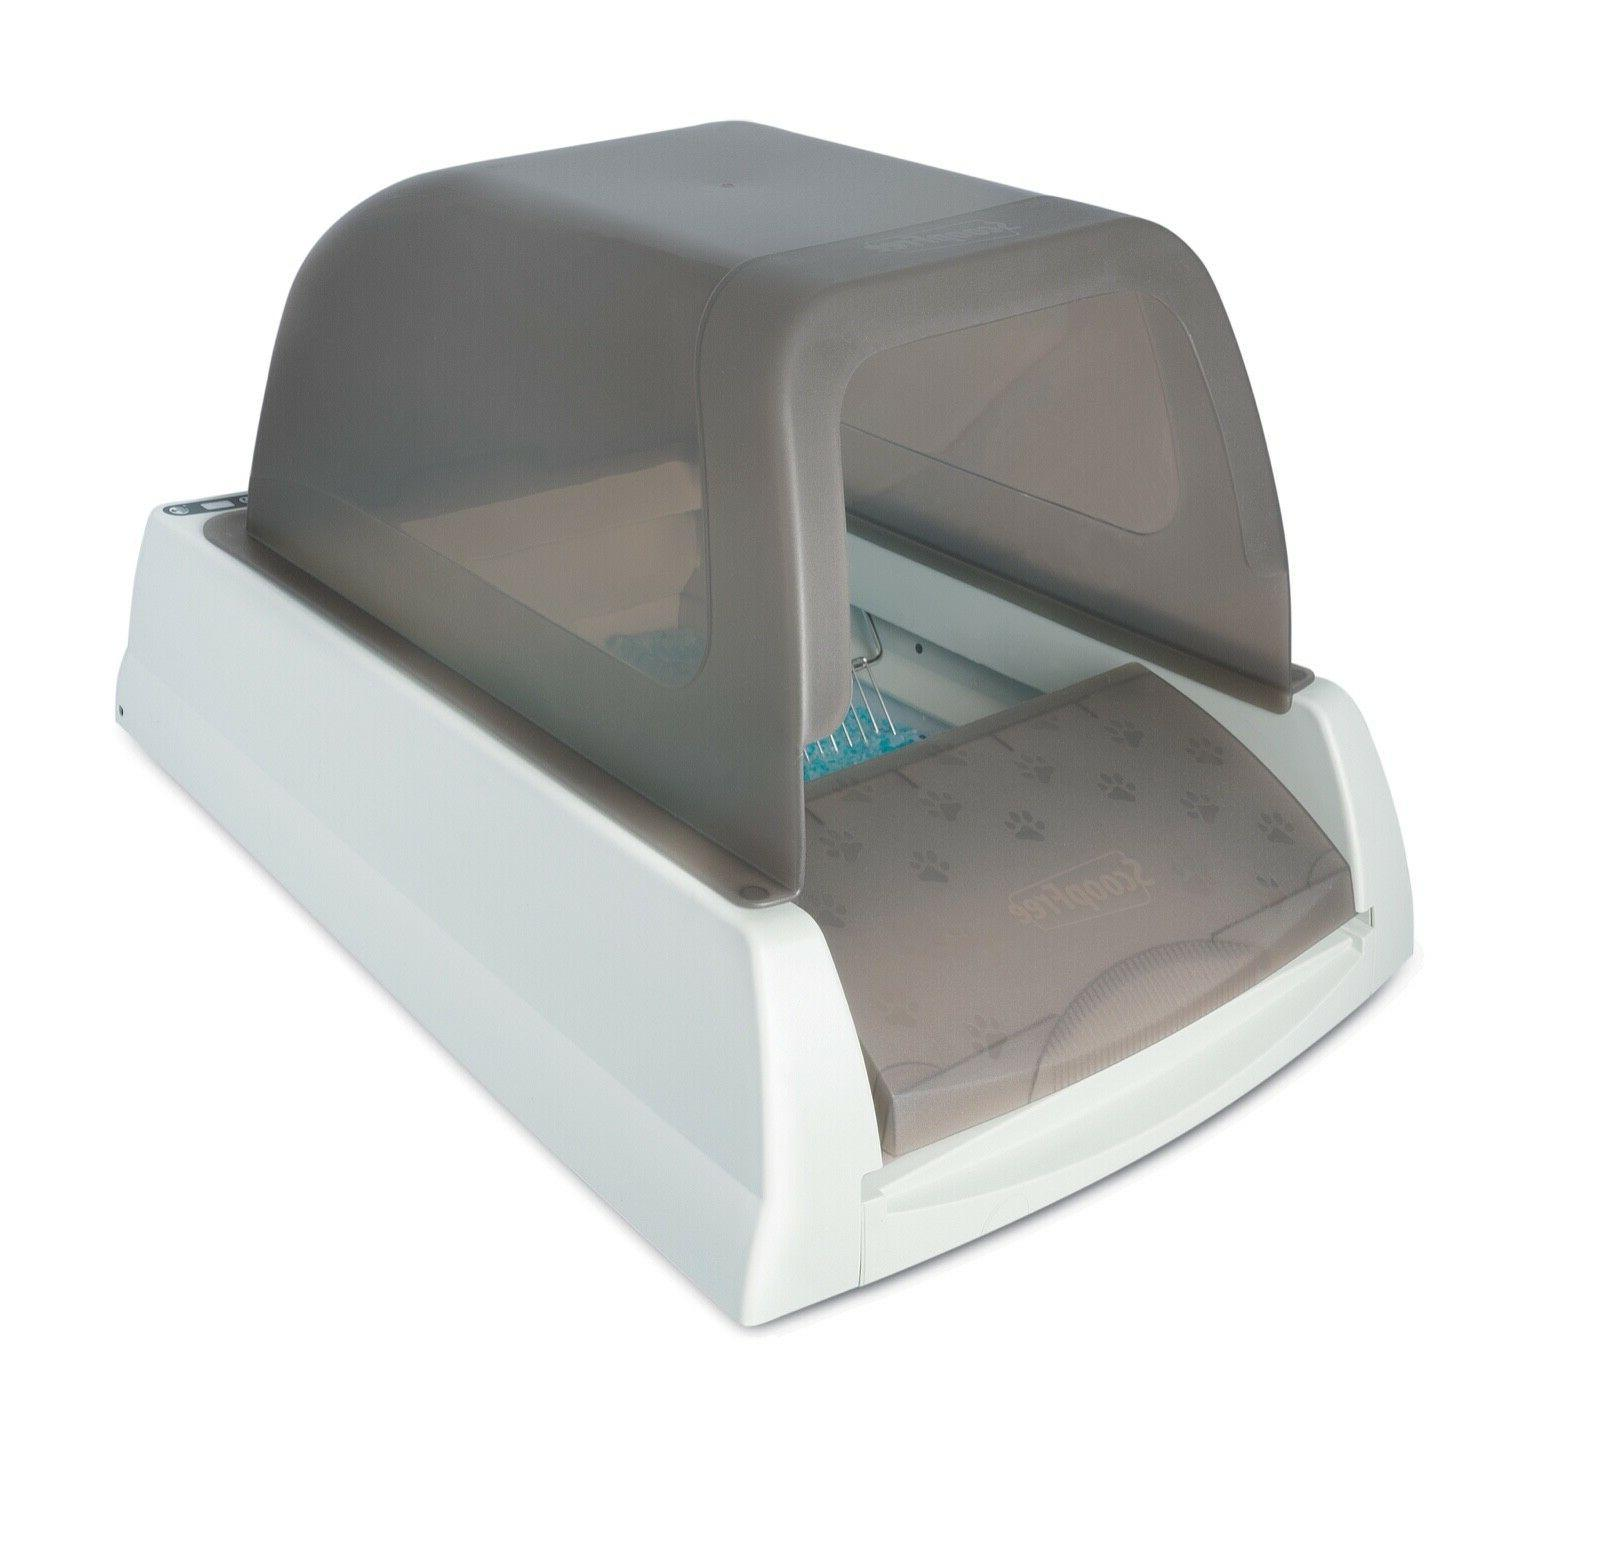 ultra automatic self cleaning litter